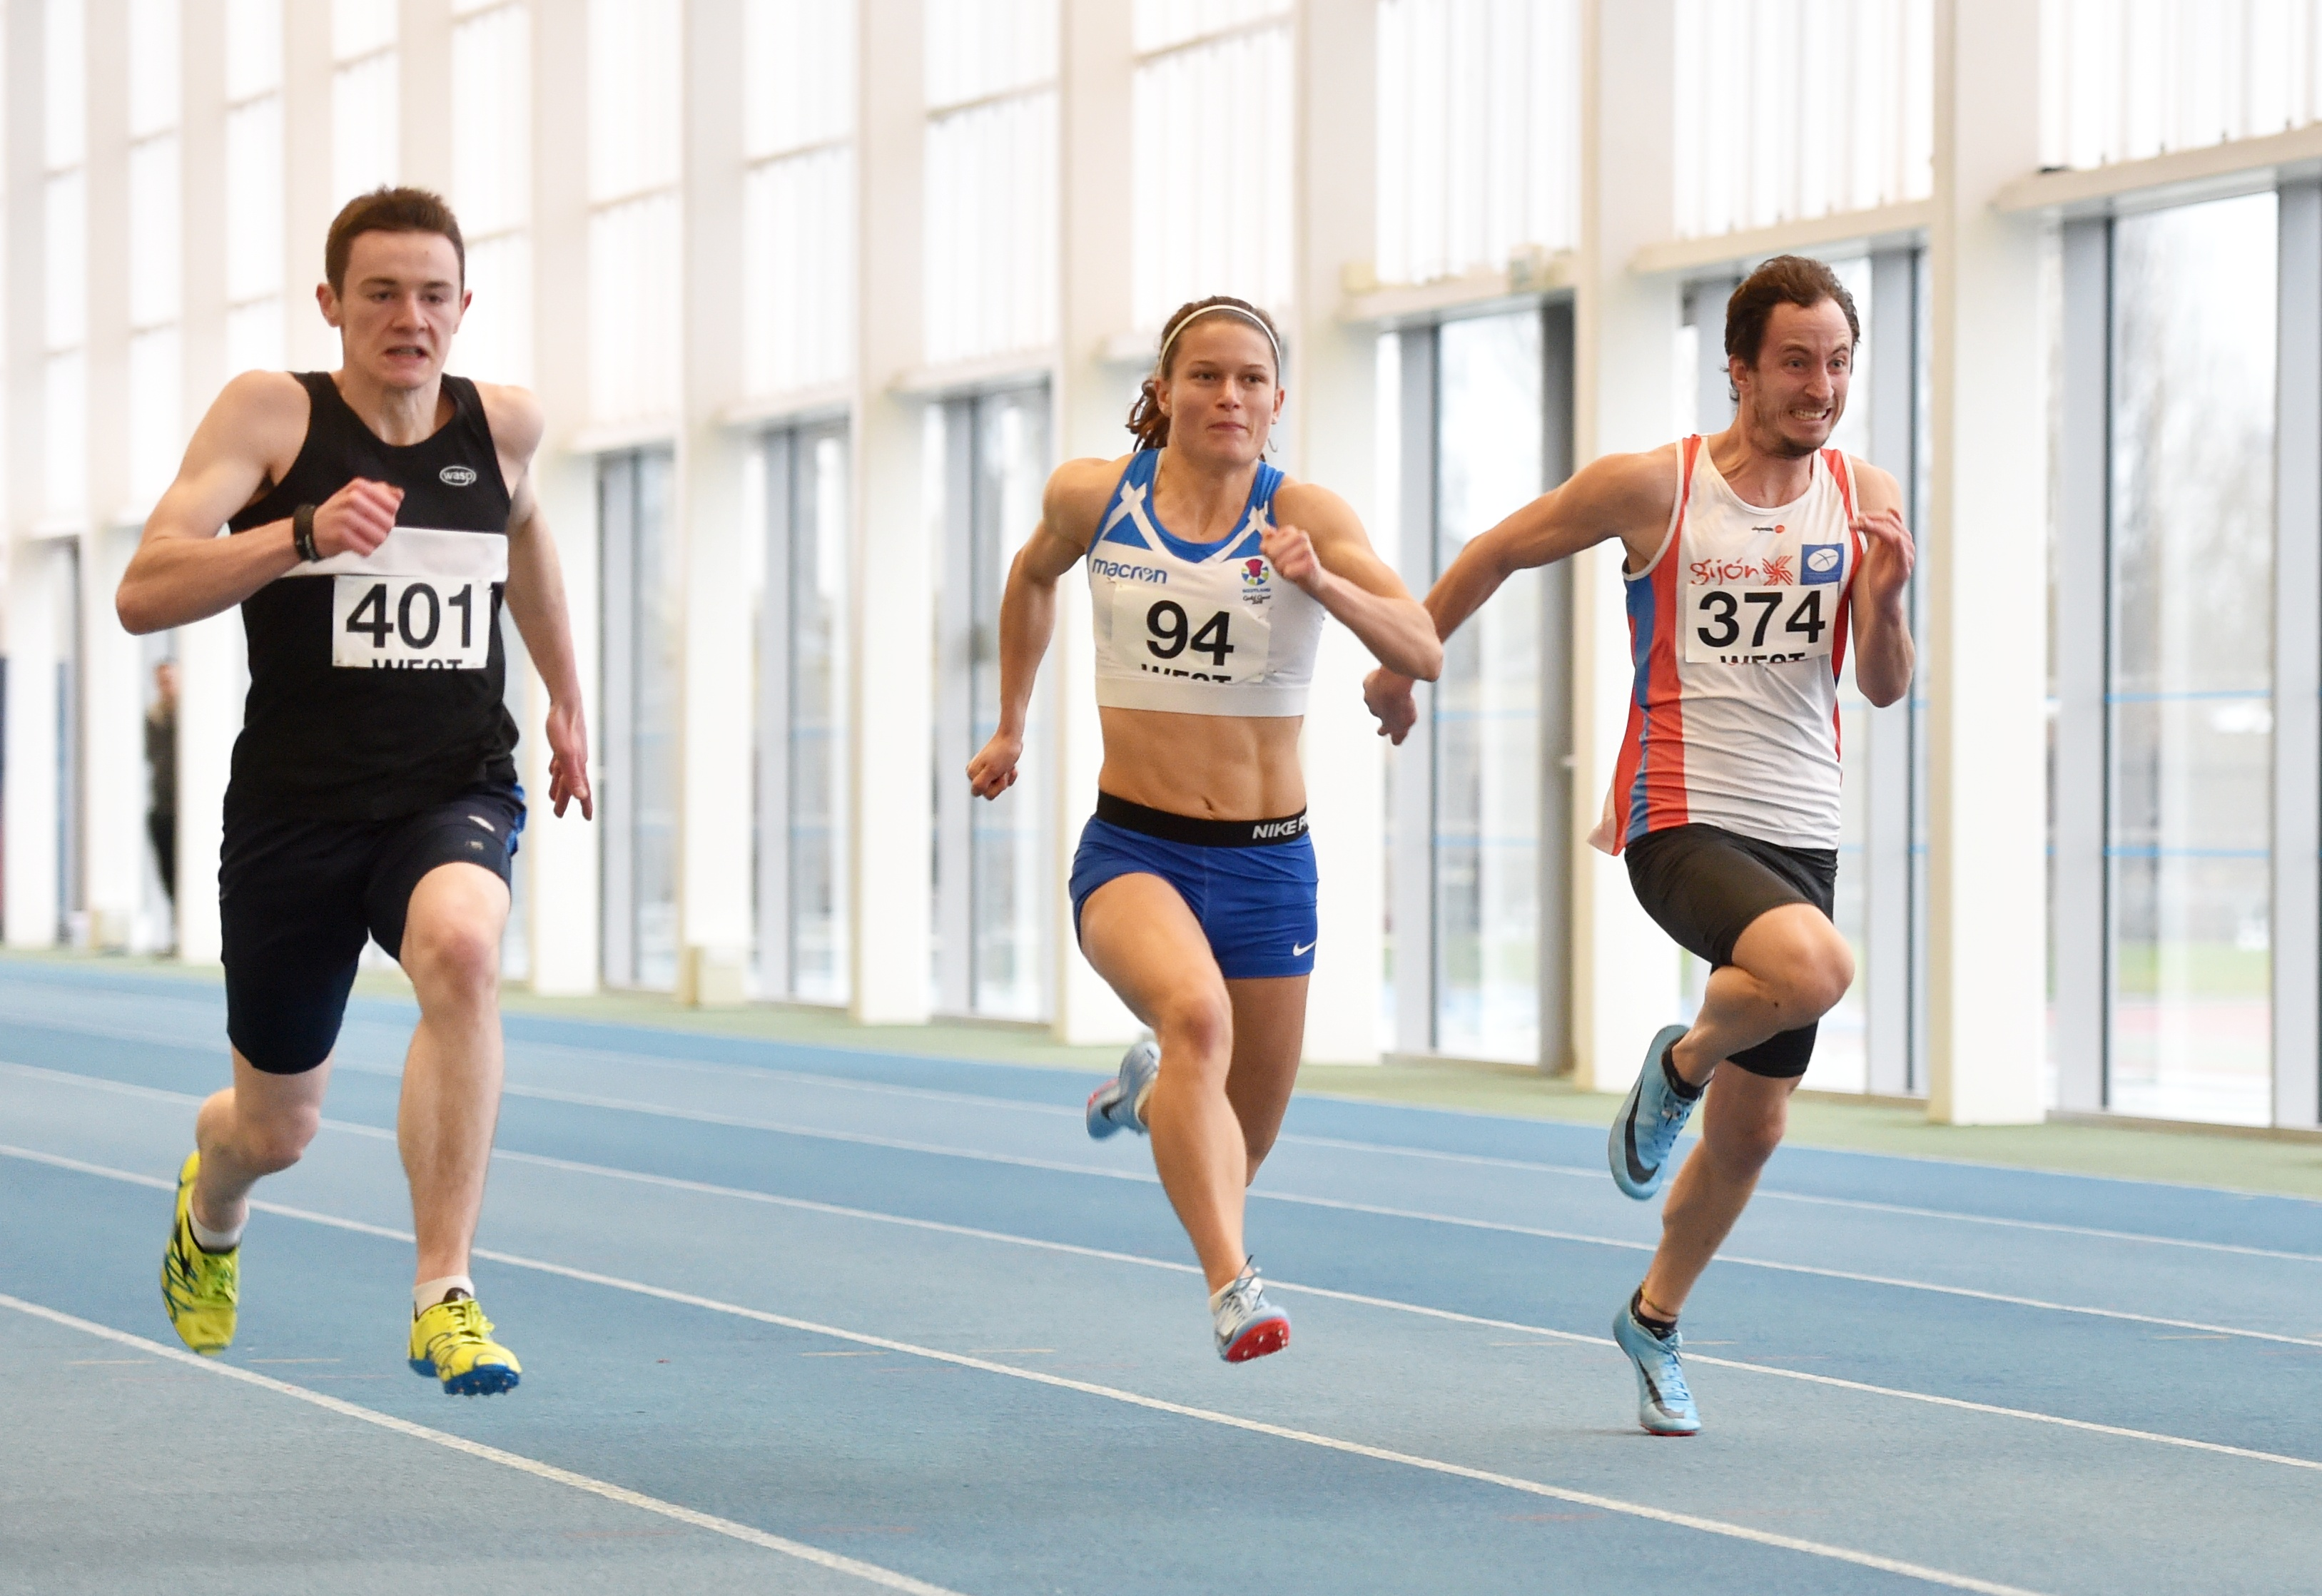 Zoey Clark, centre, will race indoors at Aberdeen Sports Village - her first race in more than a year.